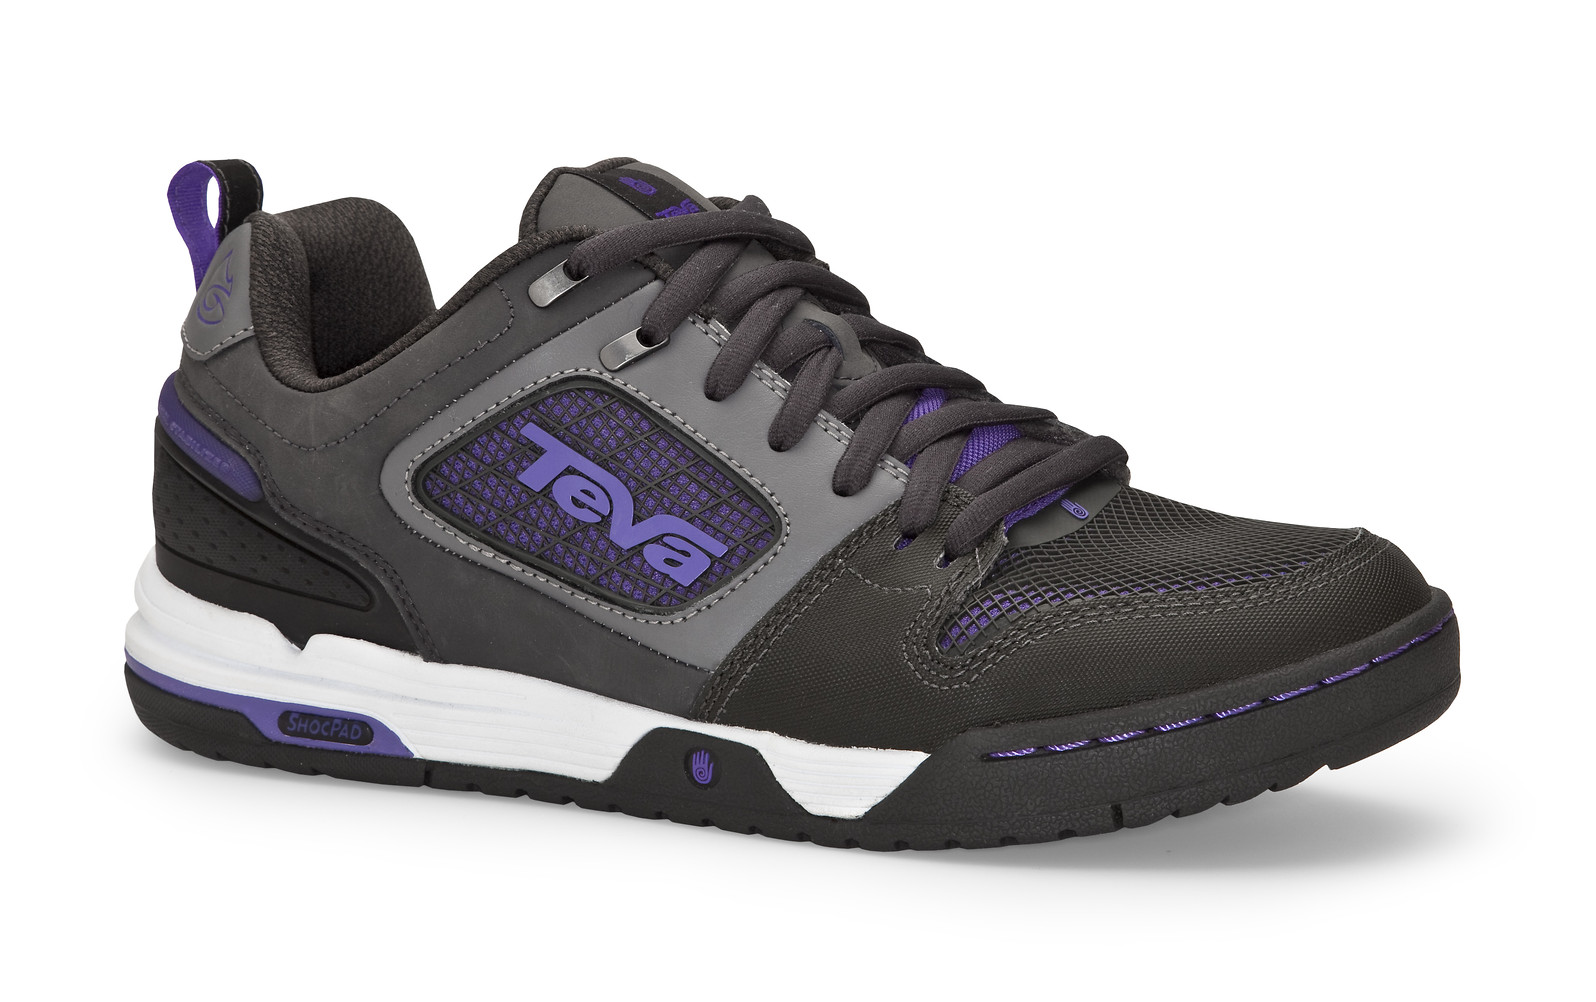 Teva Links Flat Pedal Shoe 4304_LINKS_ULVI